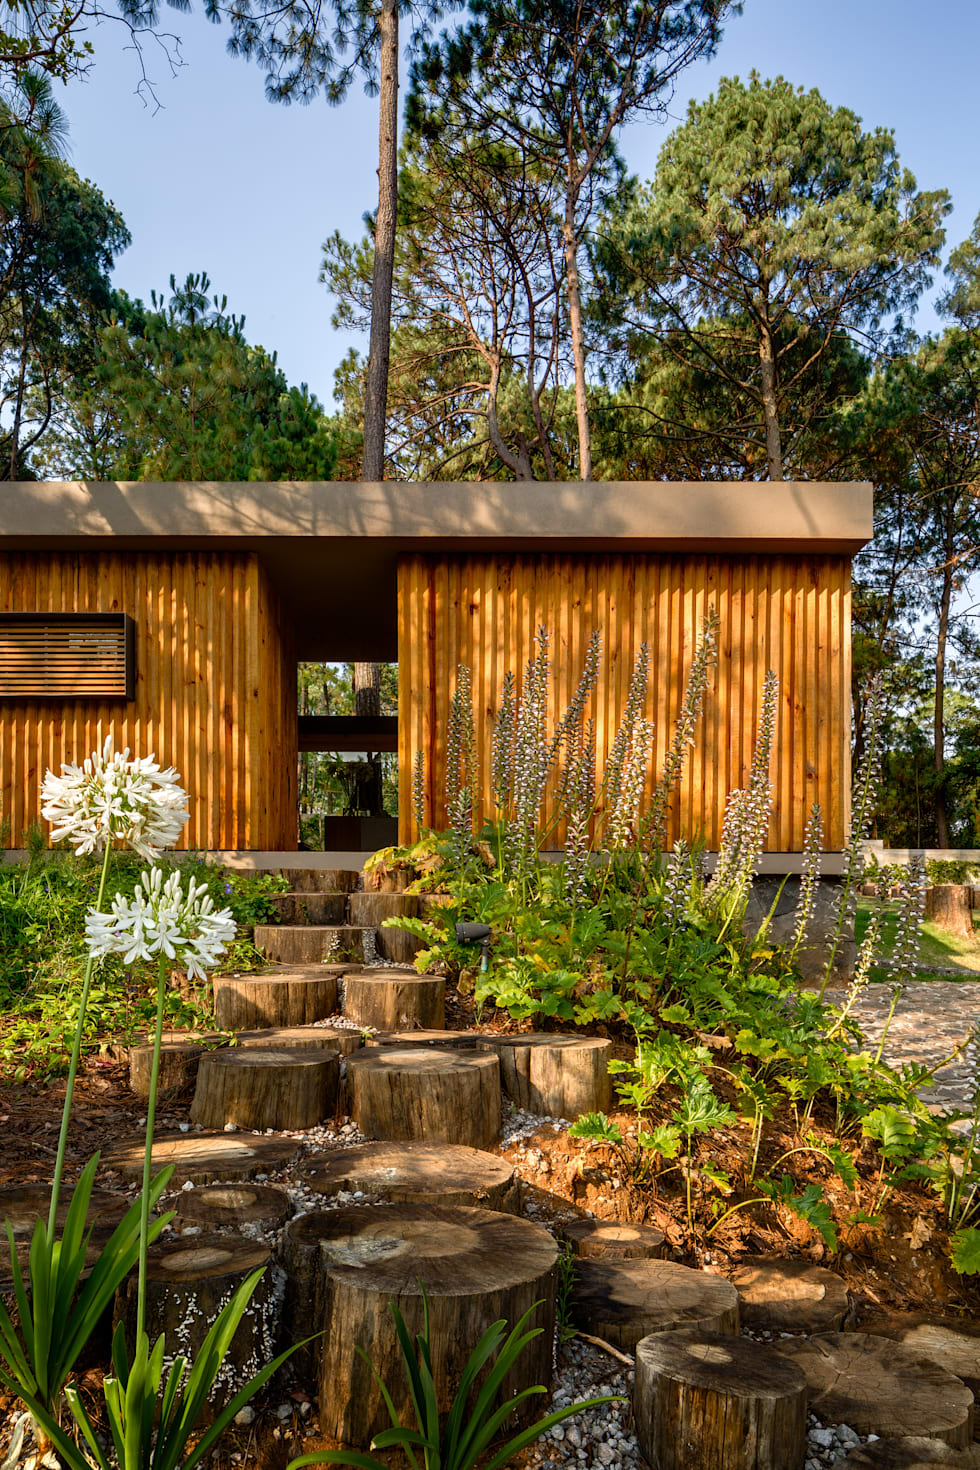 8 Homes That Co-Exist With Nature